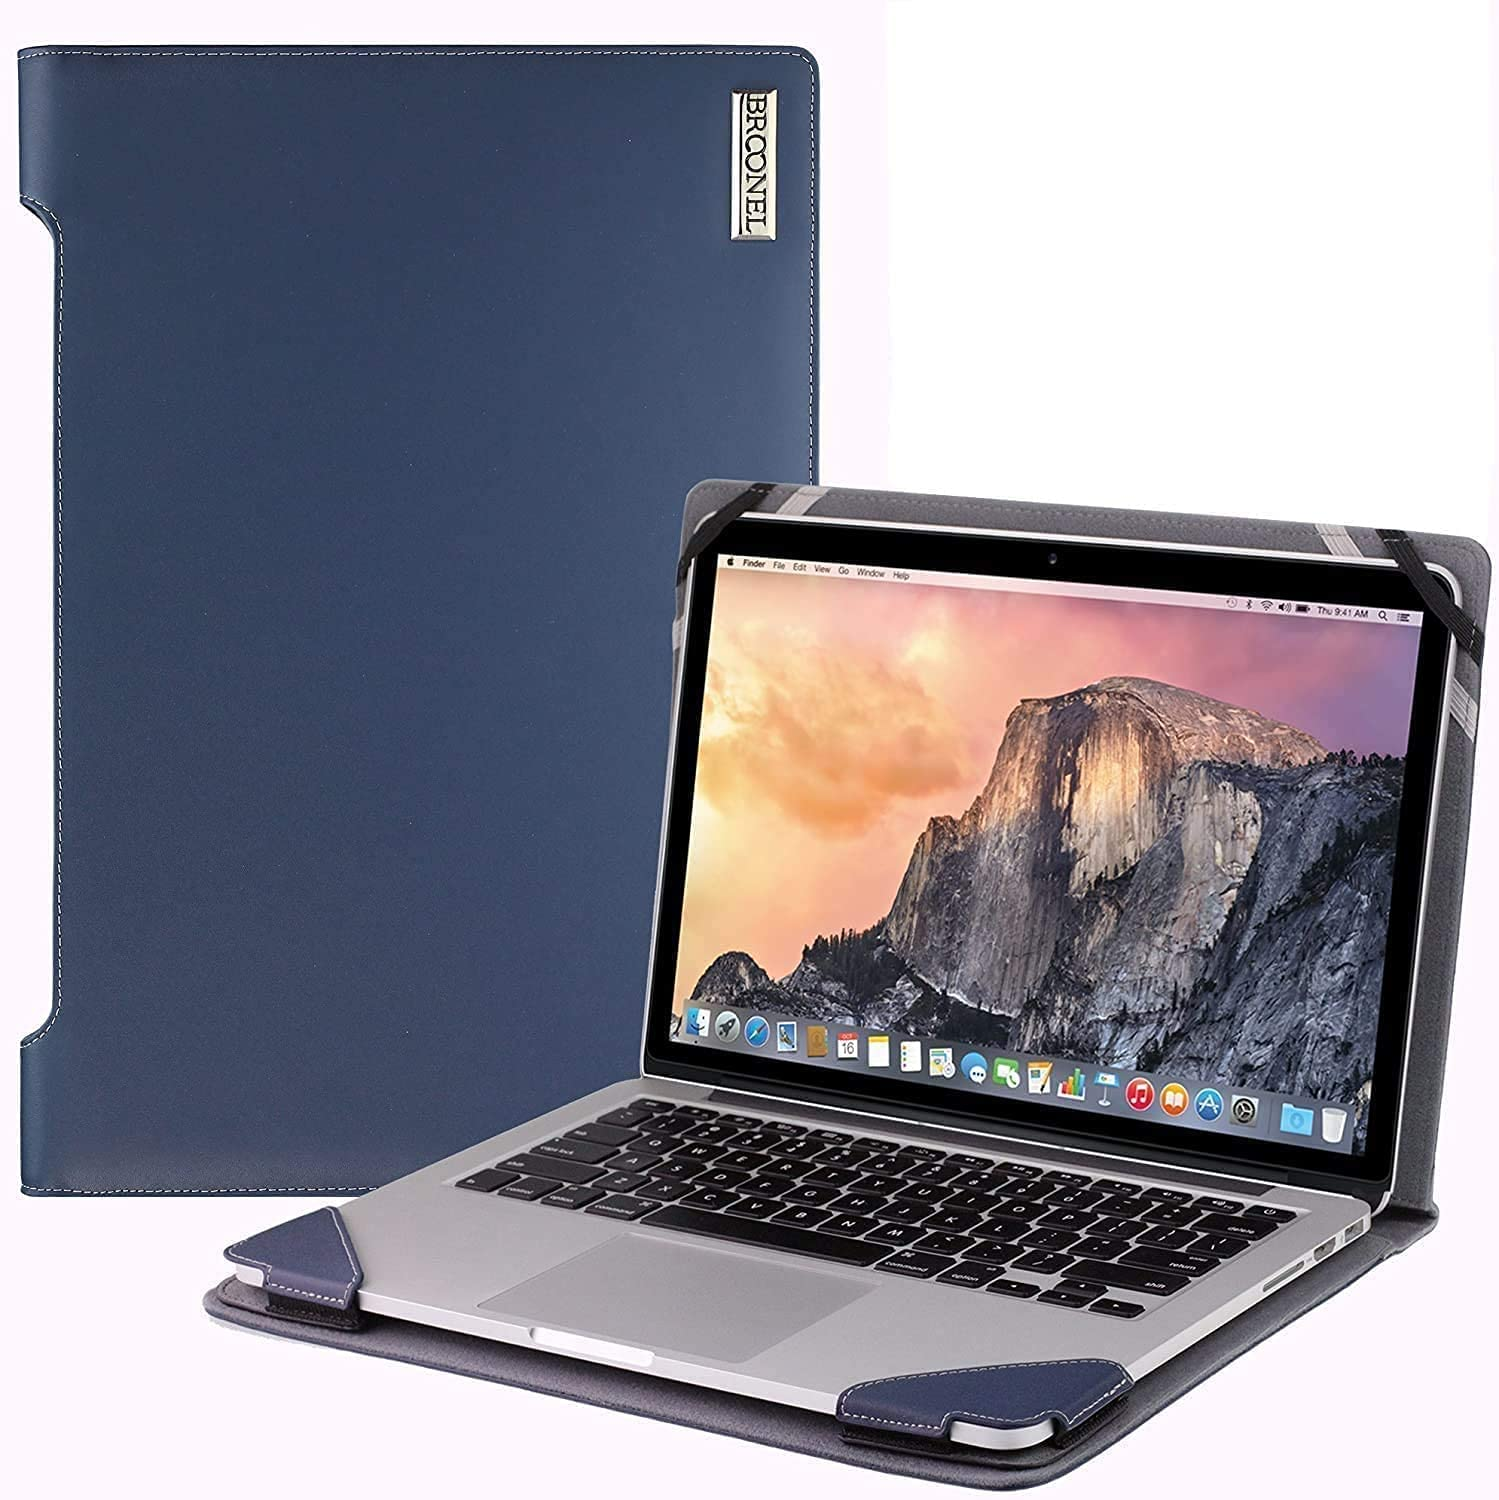 Broonel - Profile Ranking Luxury goods TOP5 Series Blue Laptop Compatible Leather Case